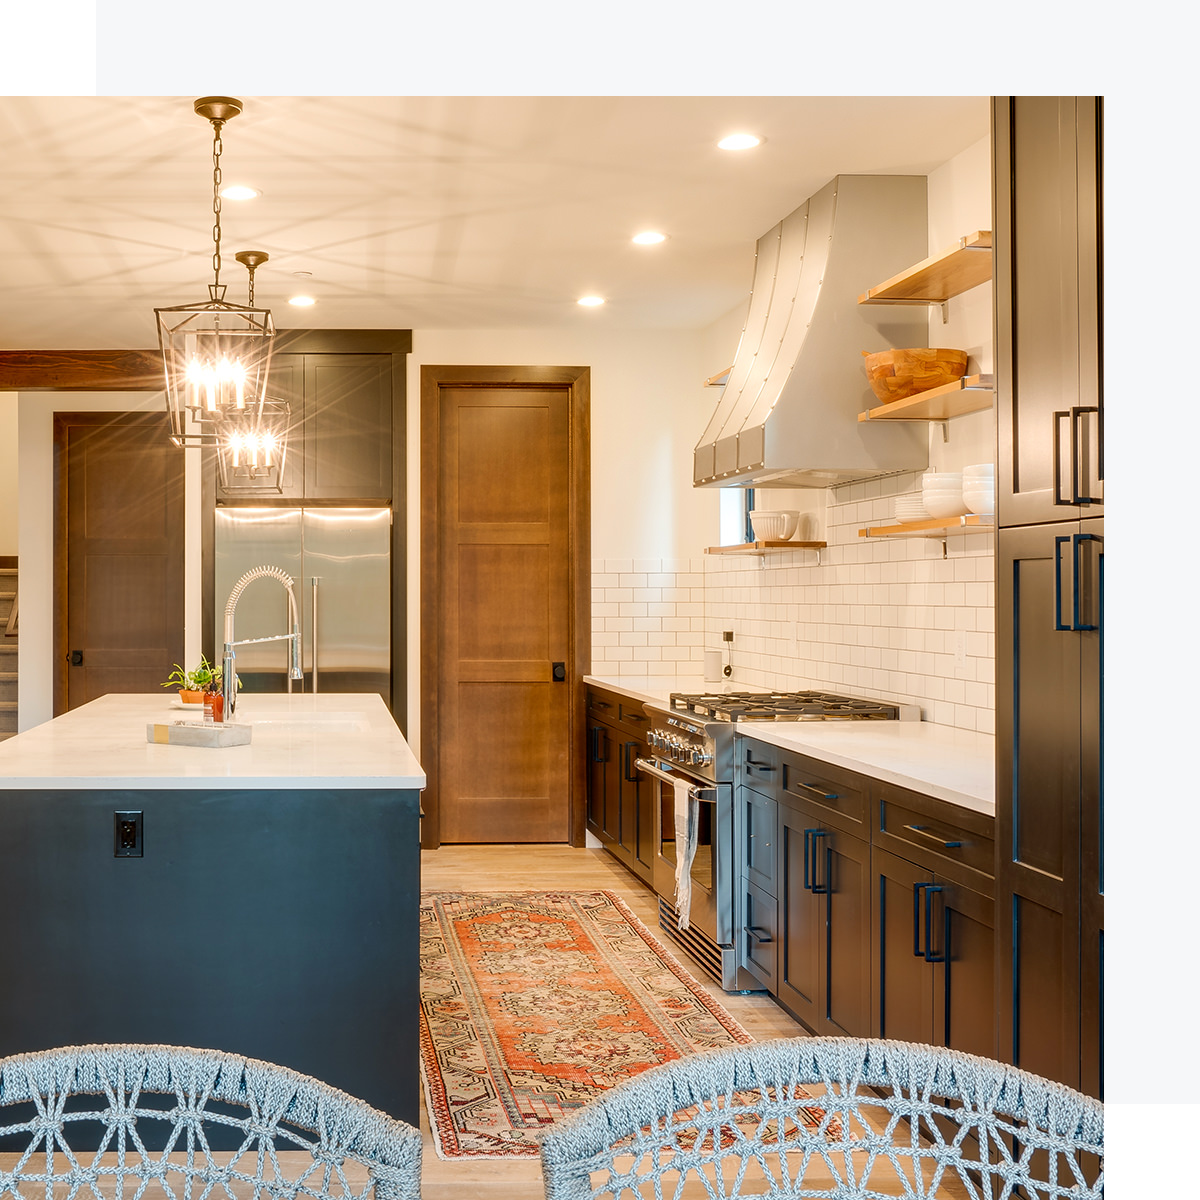 Merle Inc. kitchen design